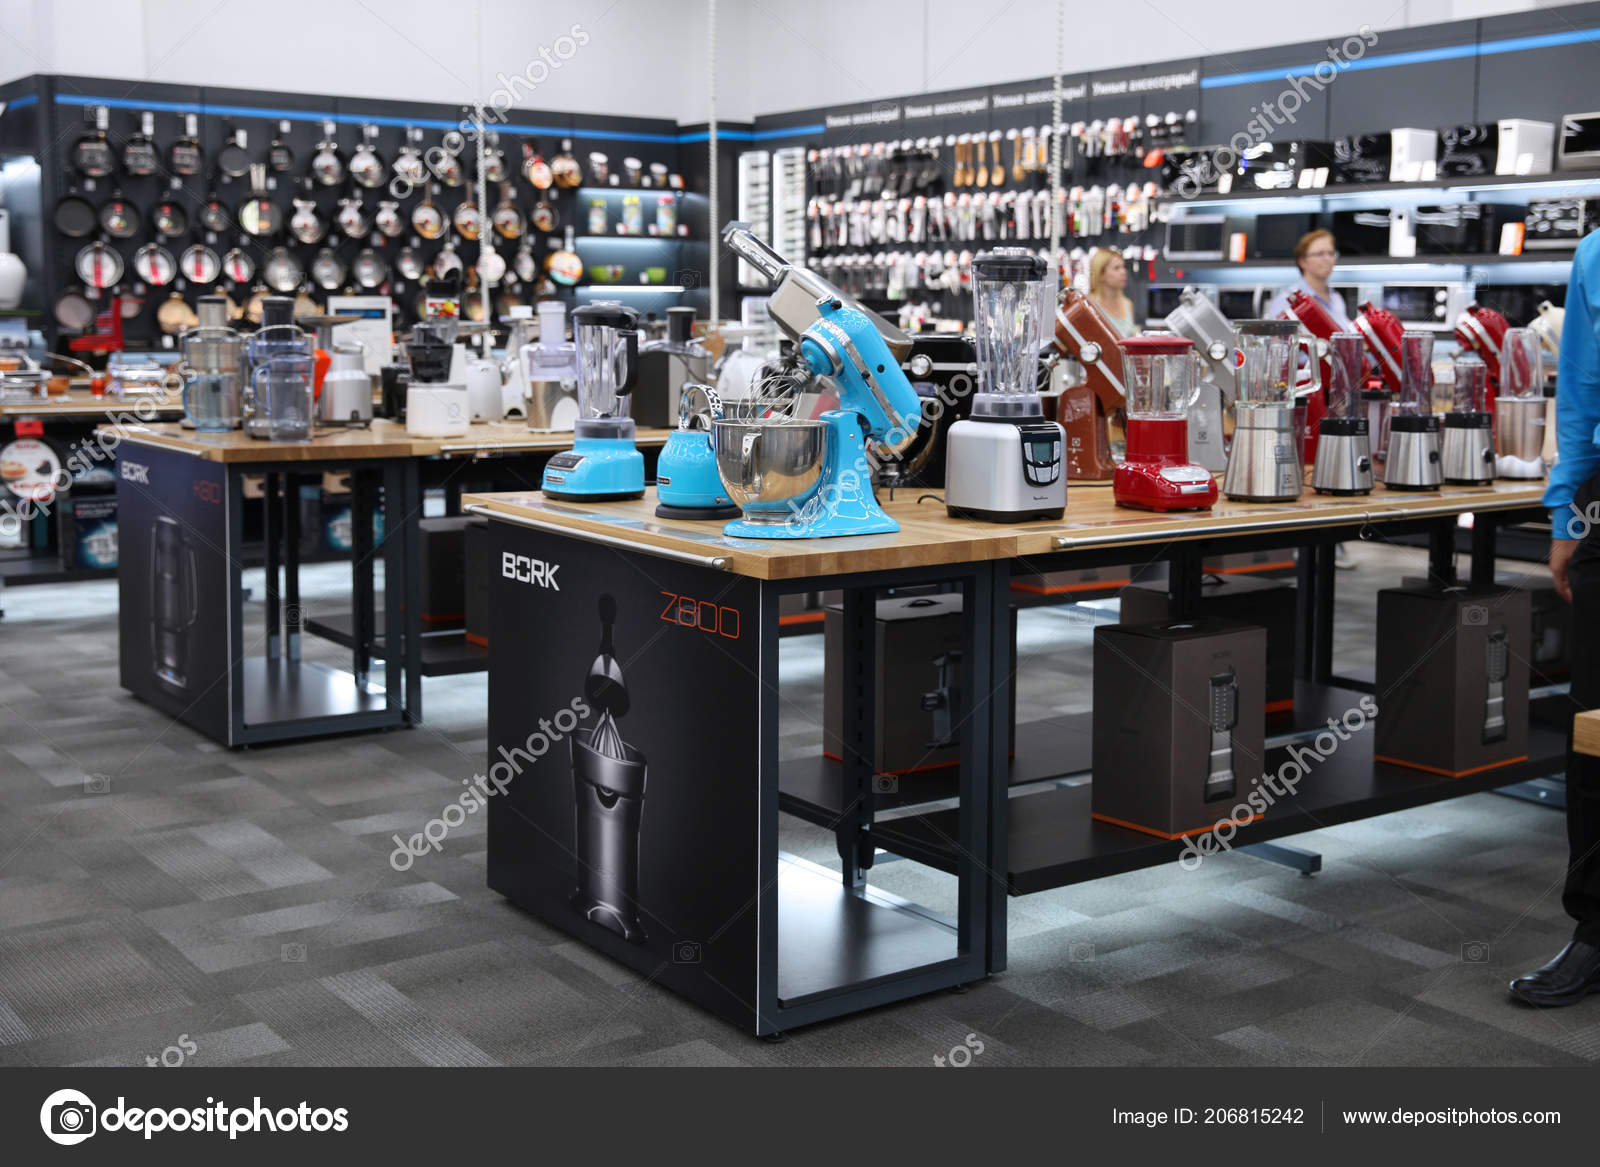 Home Appliances Bork Home Store Technopark Moscow 2018 Stock